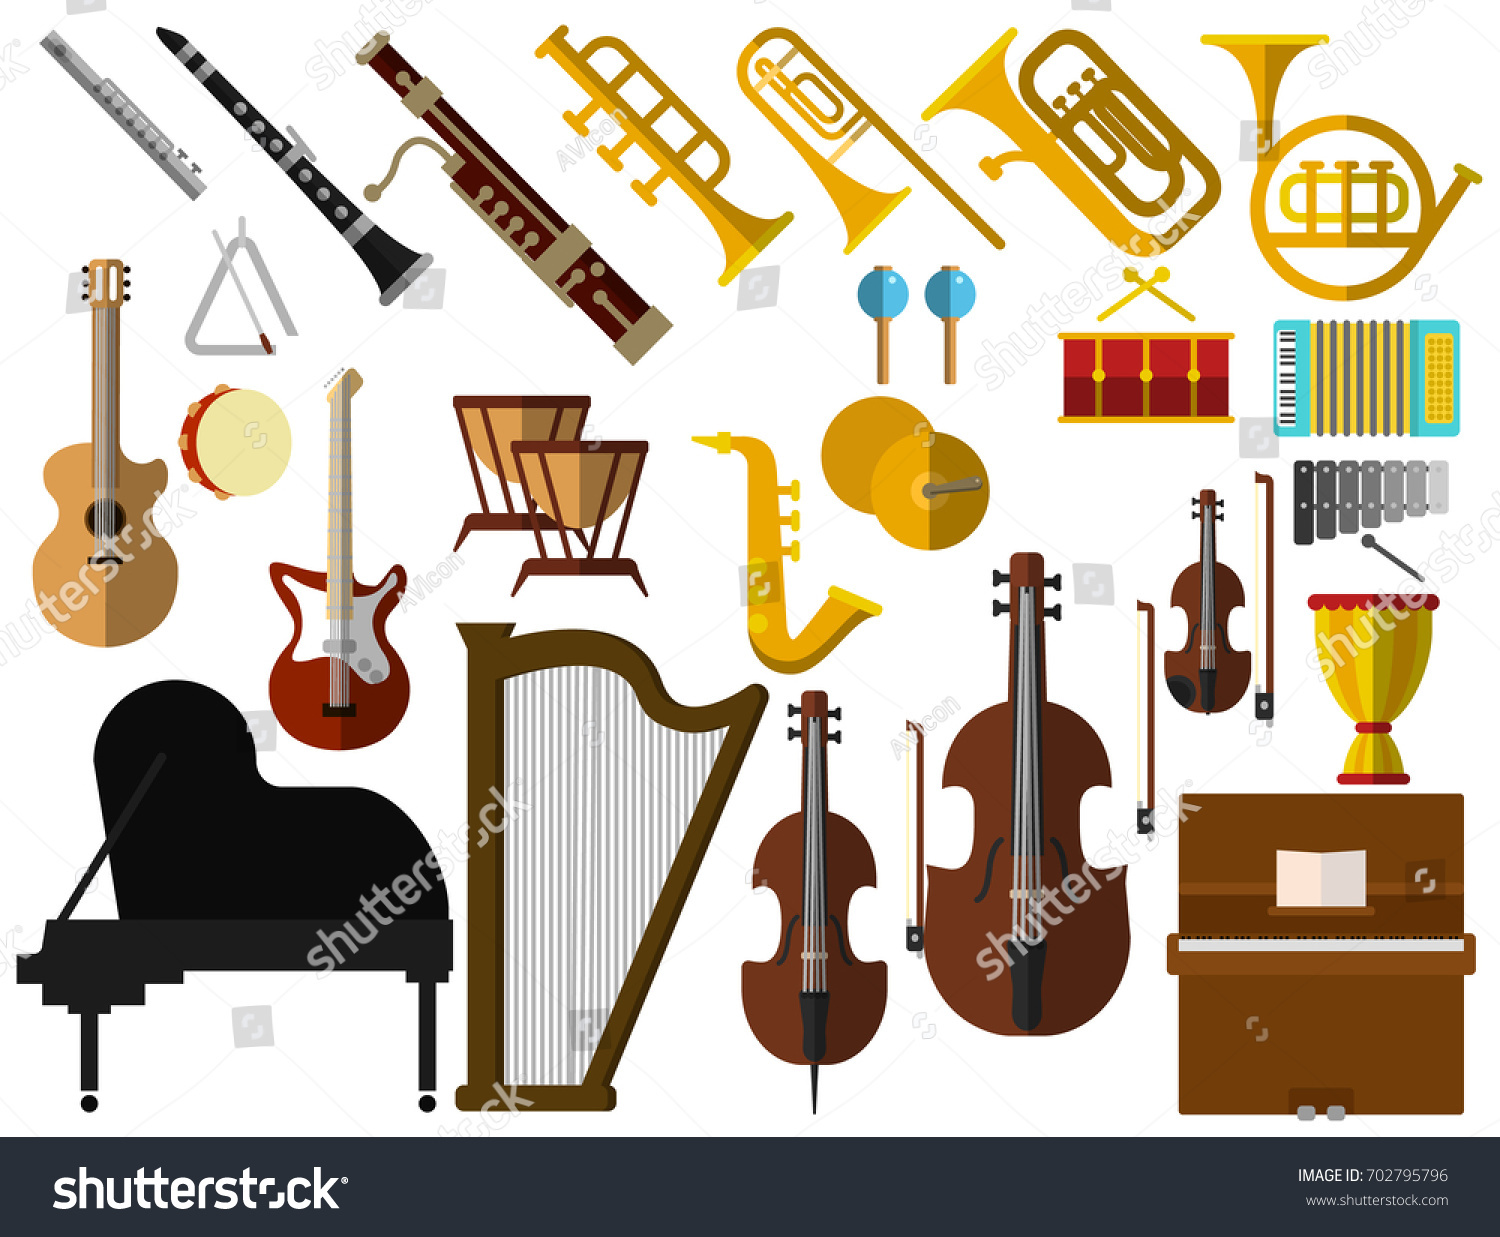 Musical Instruments Elements Collection Flat Icons Stock Vector Hd